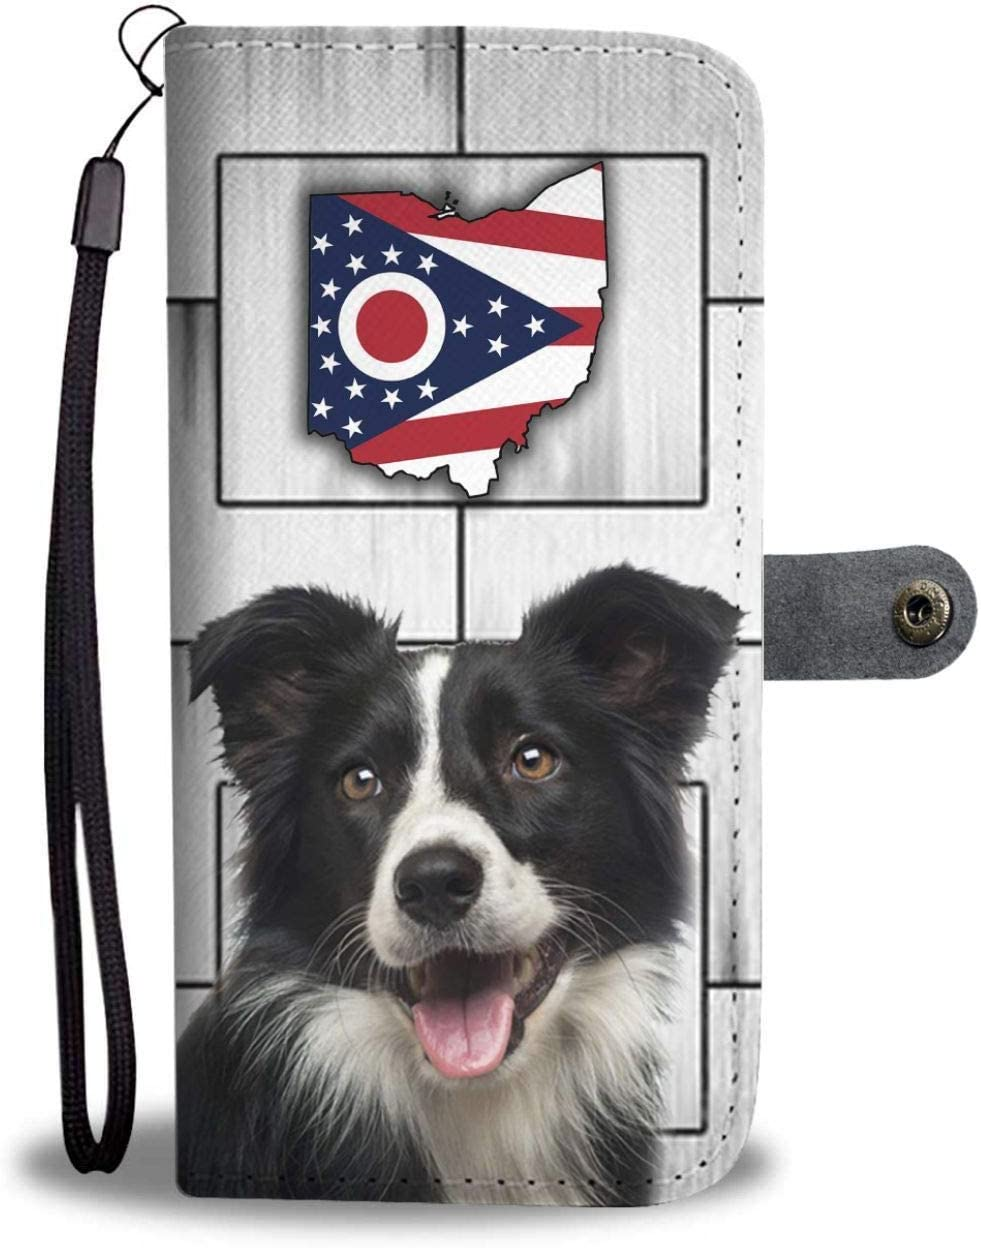 Cute Border Collie Printed Leather Wallet Case for Samsung, iPhone, LG, Goole Pixel, Huawei, HTC, Motorola, Xiaomi- Dog Printed Magnetic flip Cover with Card Slots Wrist Strap- Ohio State